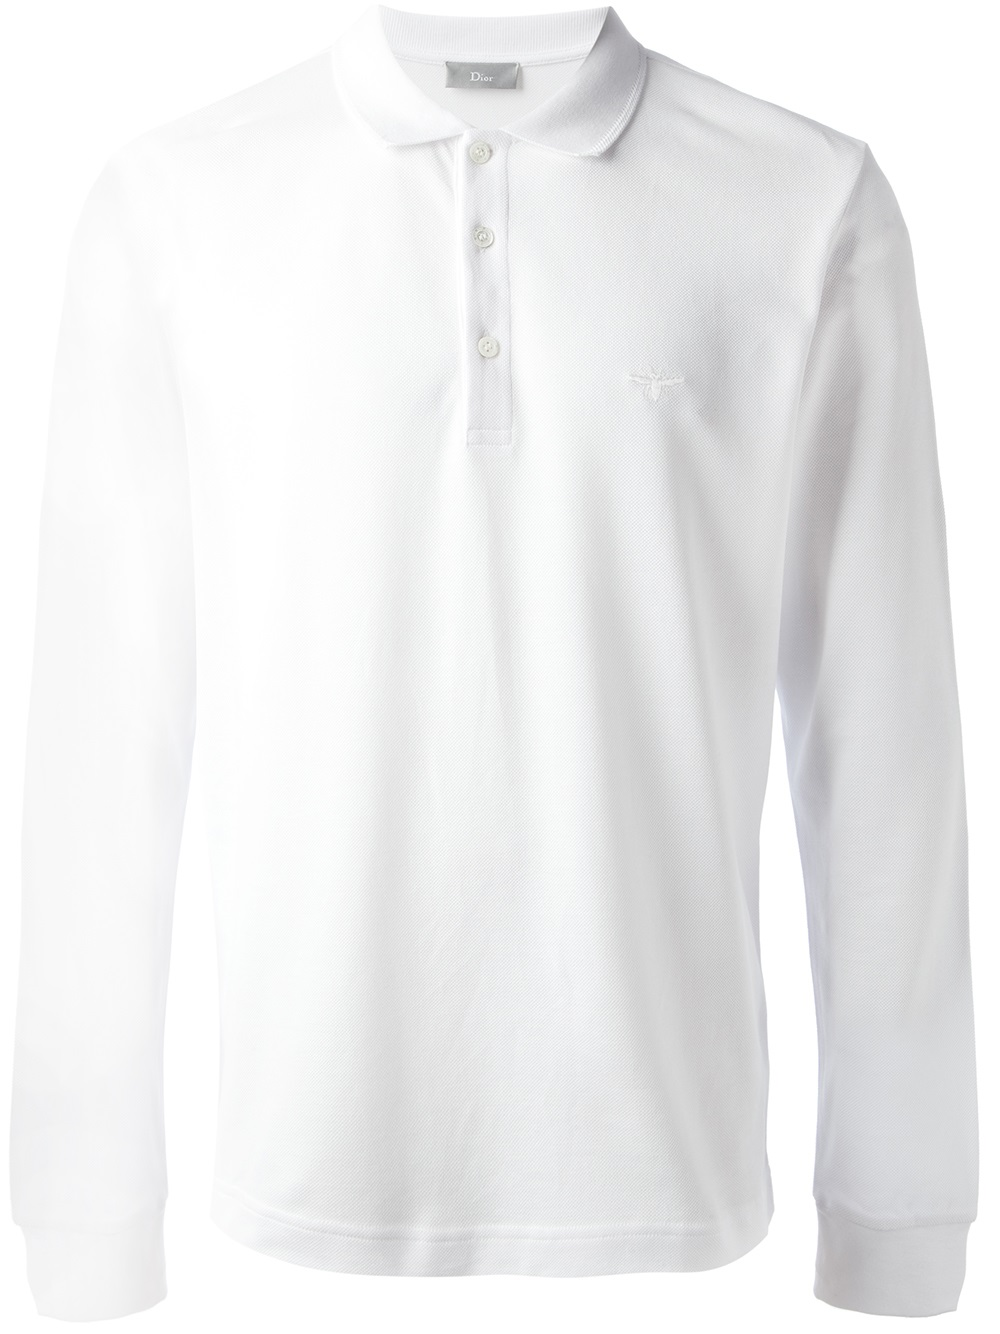 dfd765dd Dior Homme Long Sleeve Polo Shirt in White for Men - Lyst